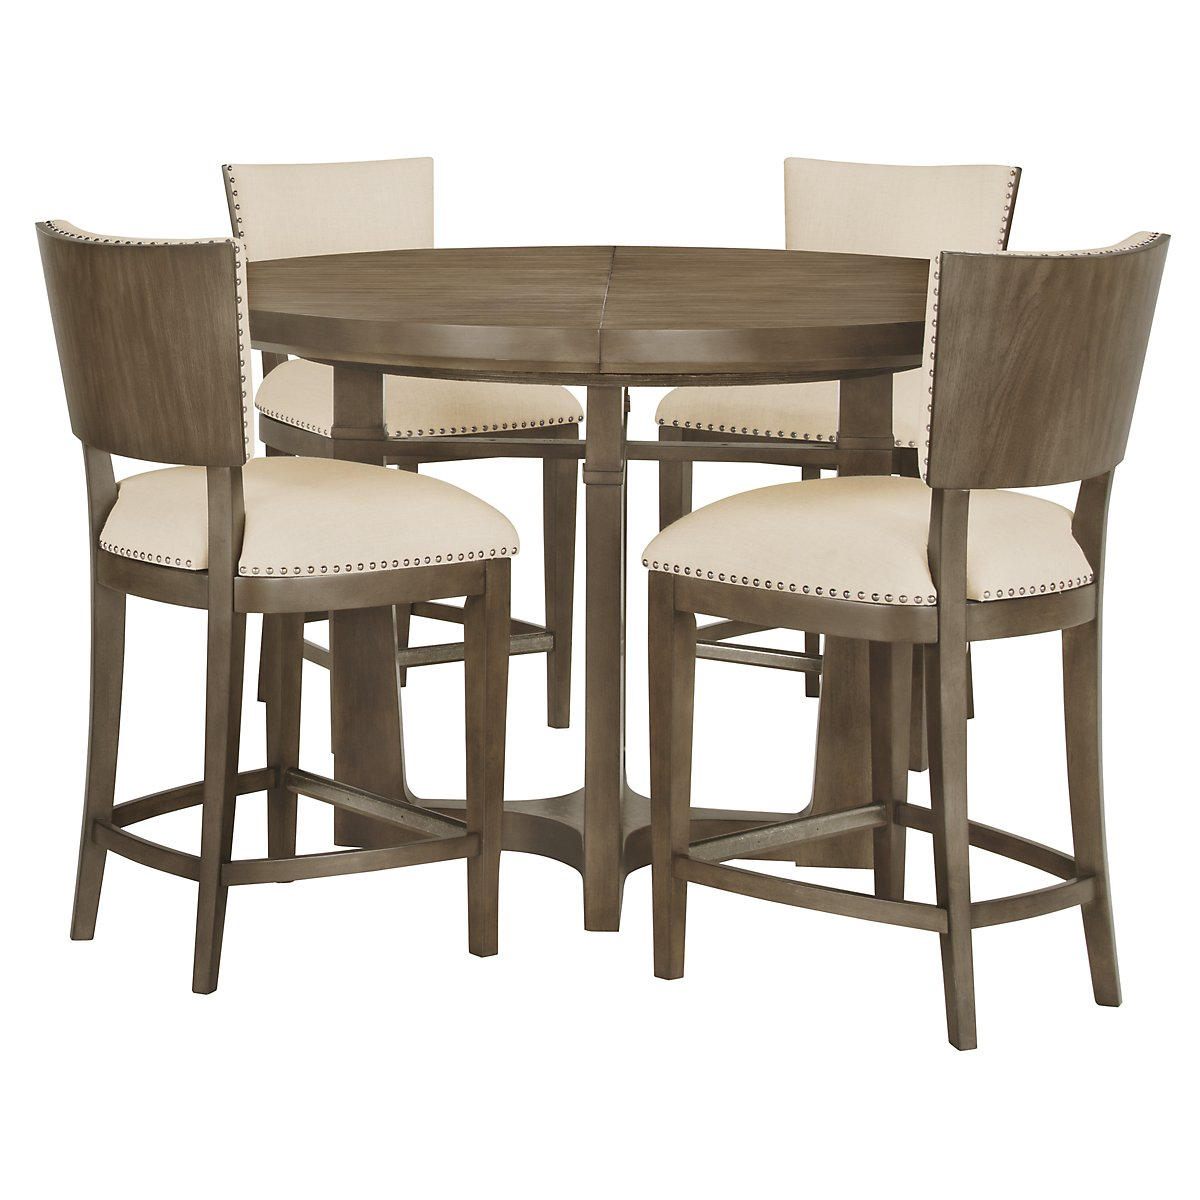 Preston Gray Round High Table & 4 Upholstered Barstools